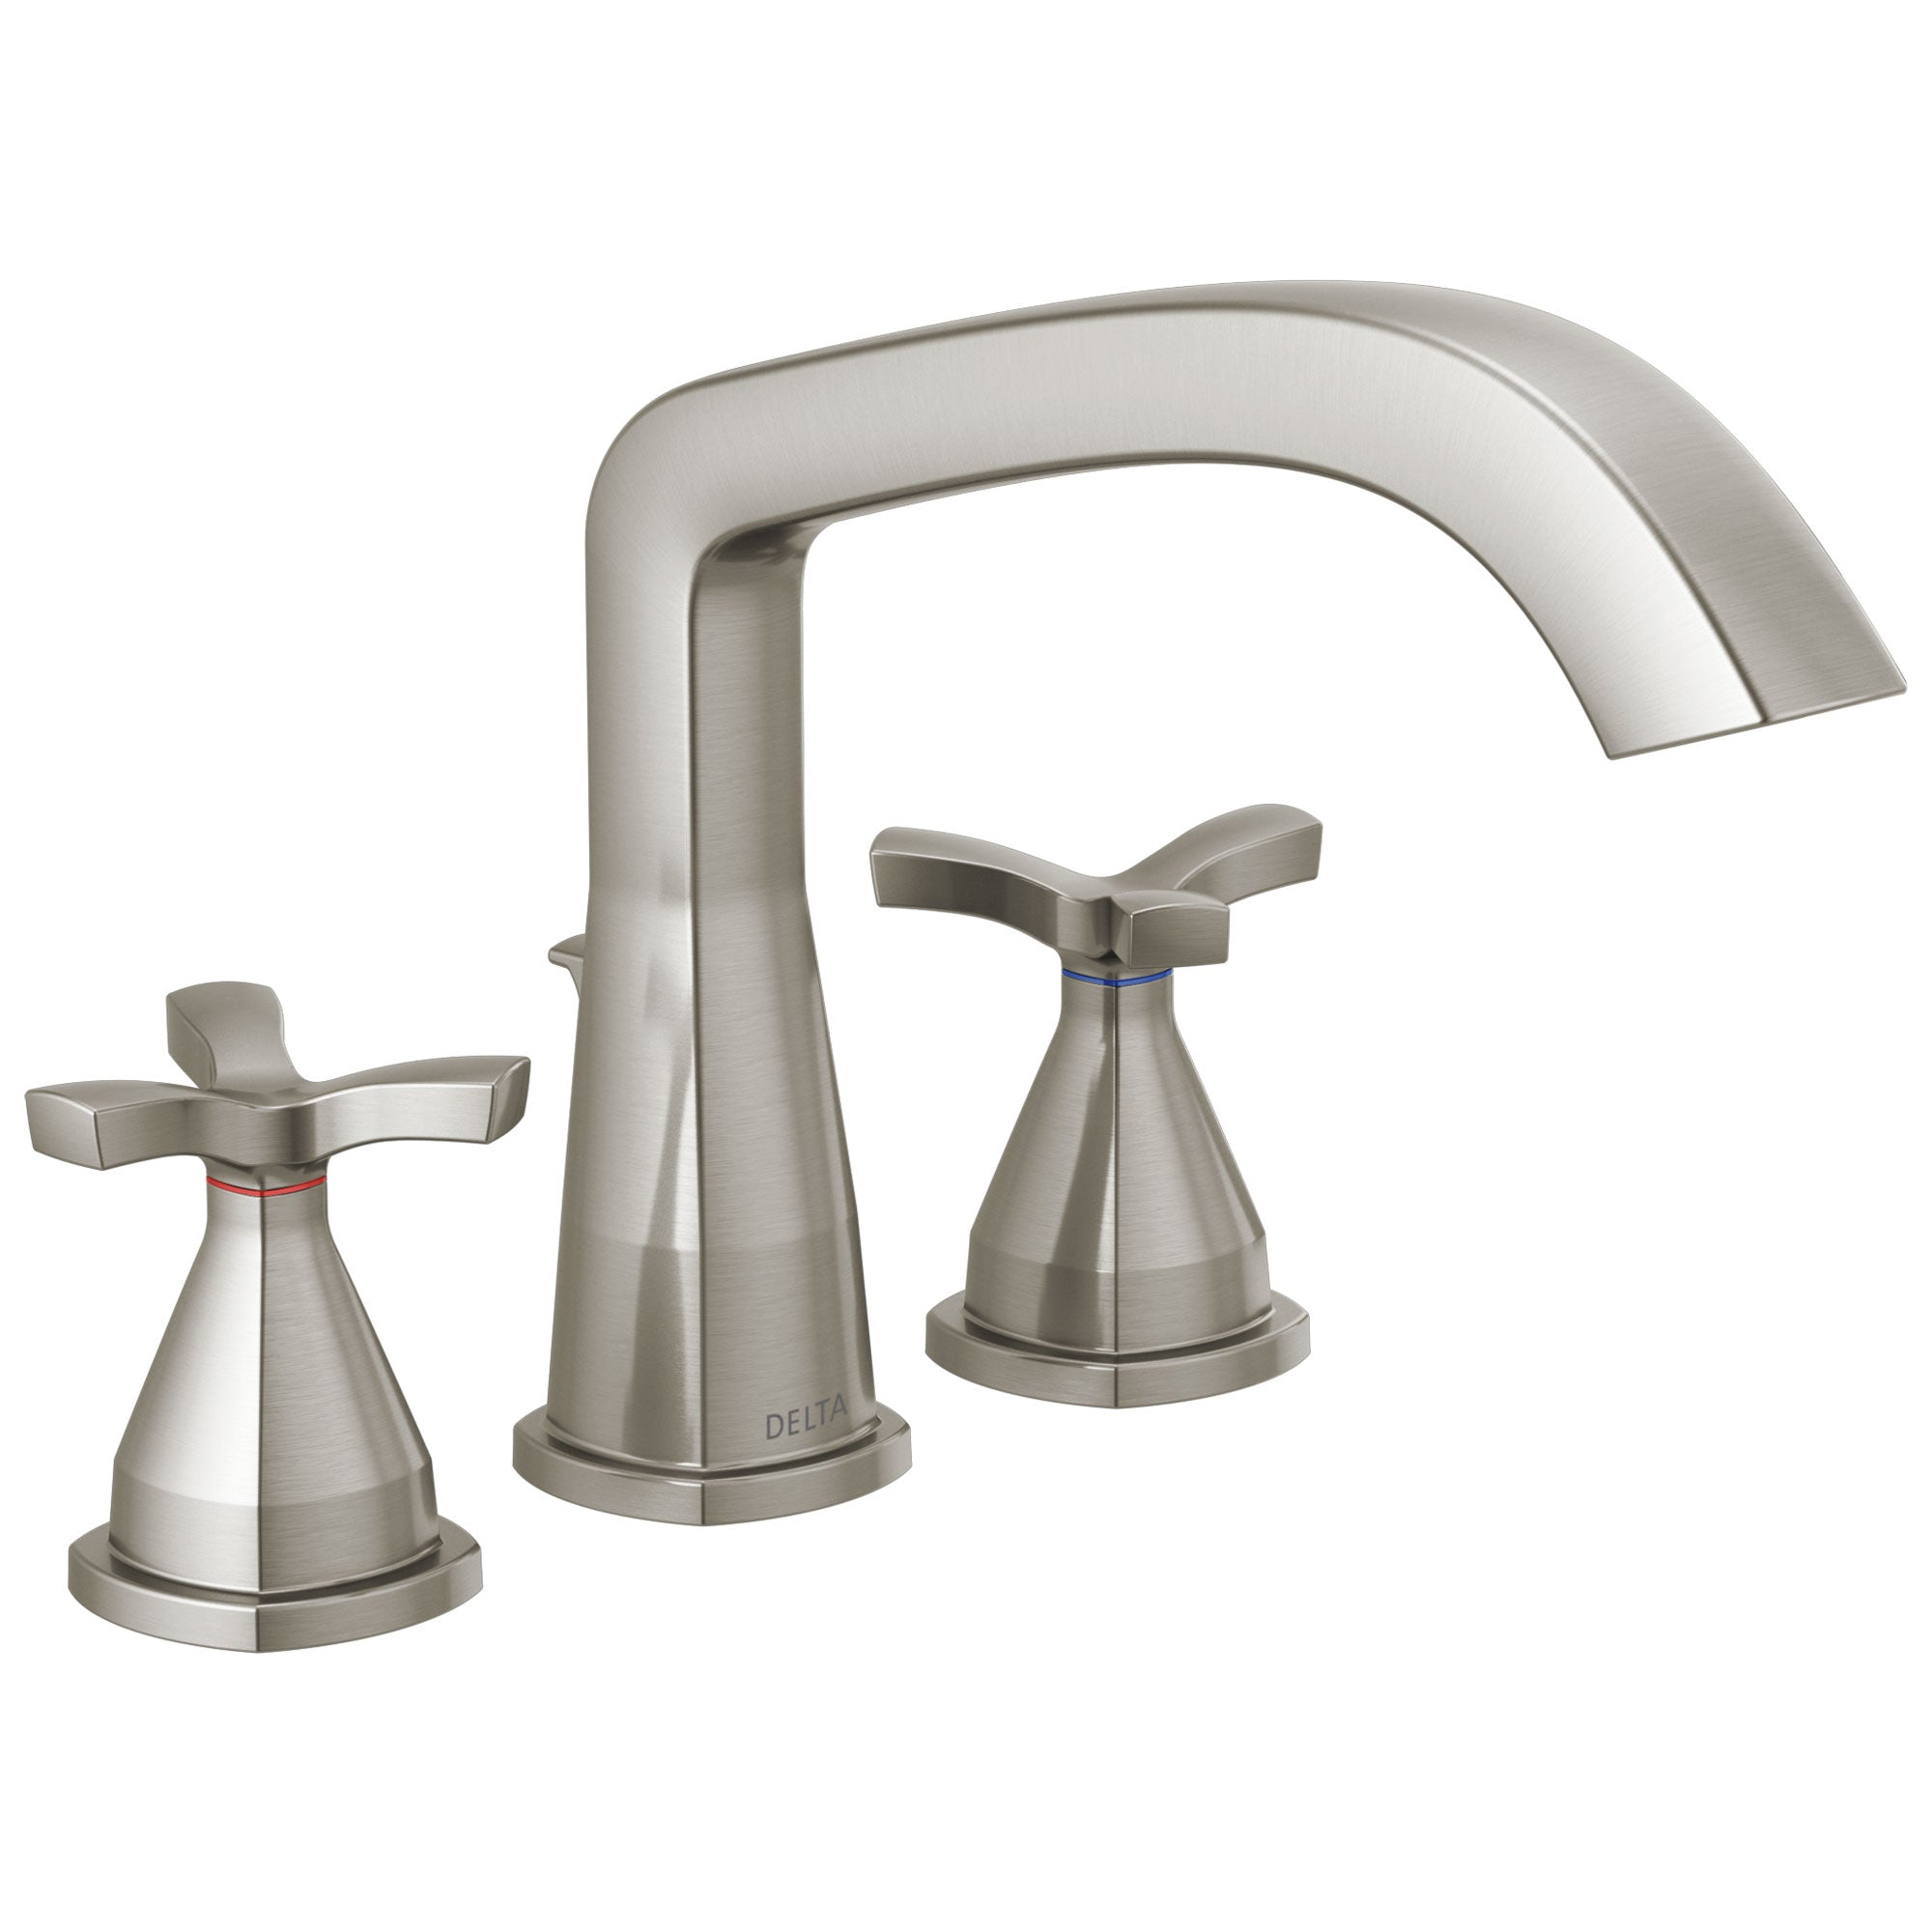 Delta Stryke Stainless Steel Finish Three Hole Cross Handle Roman Tub Filler Faucet Trim Kit (Requires Valve) DT27766SS